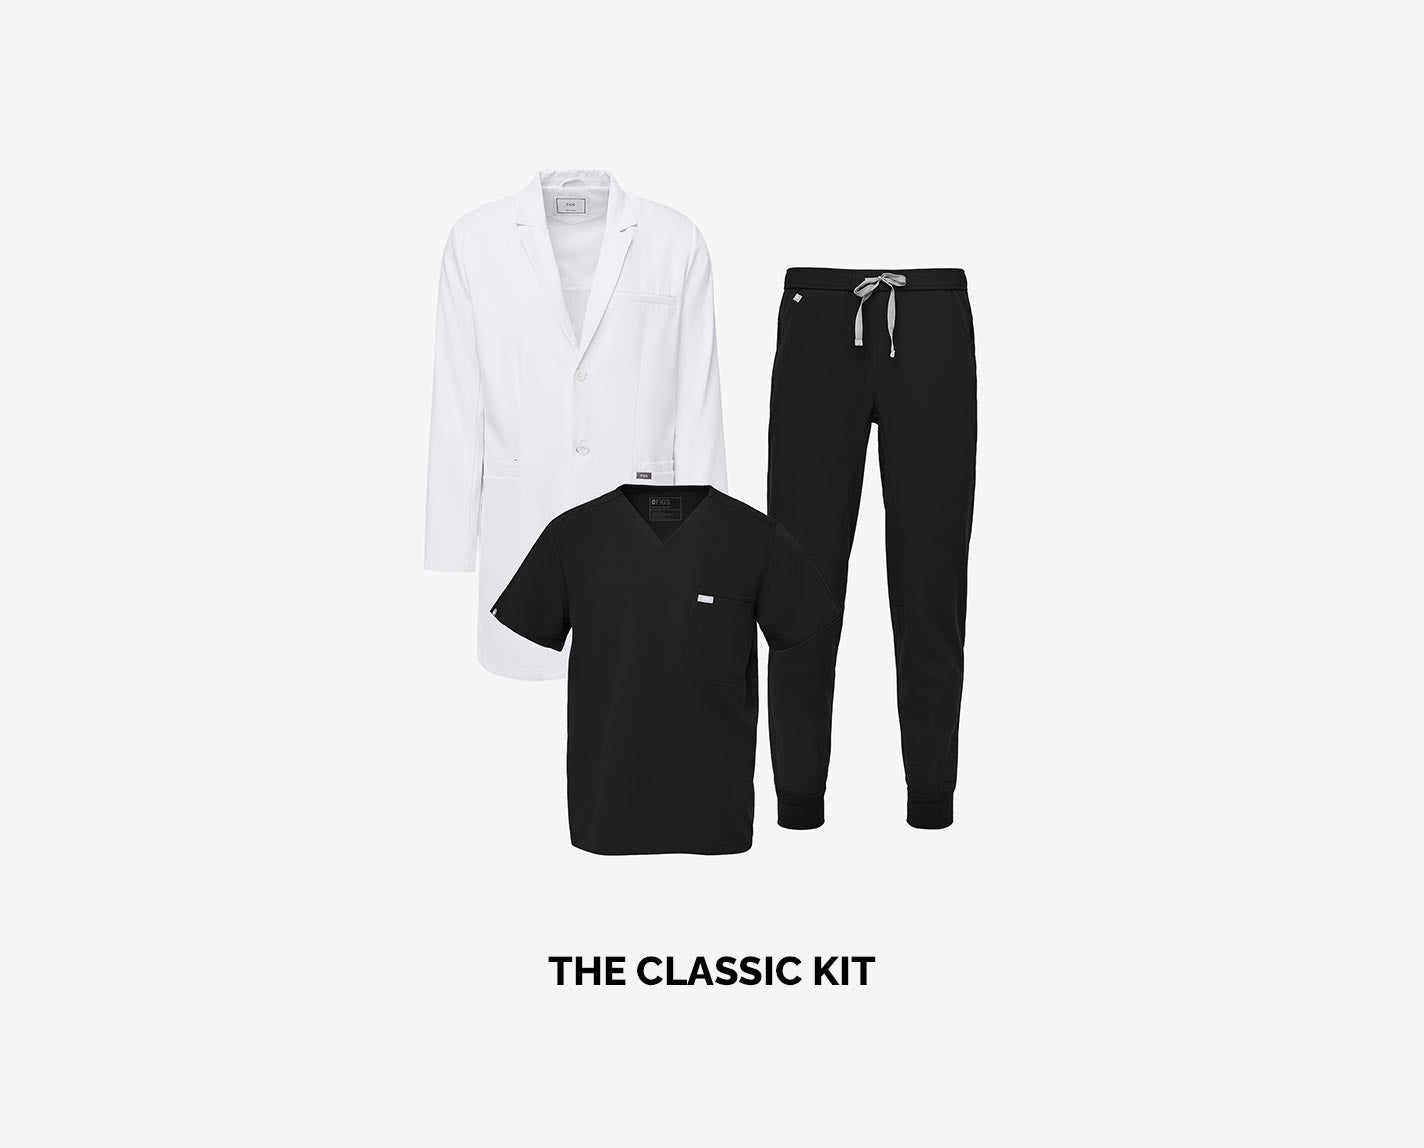 Classic style. Kits bring you all the good stuff about 100% Awesome Scrubs — engineered with design, comfort and function — in pre-planned outfits so you can focus on the important things, on-shift and off.